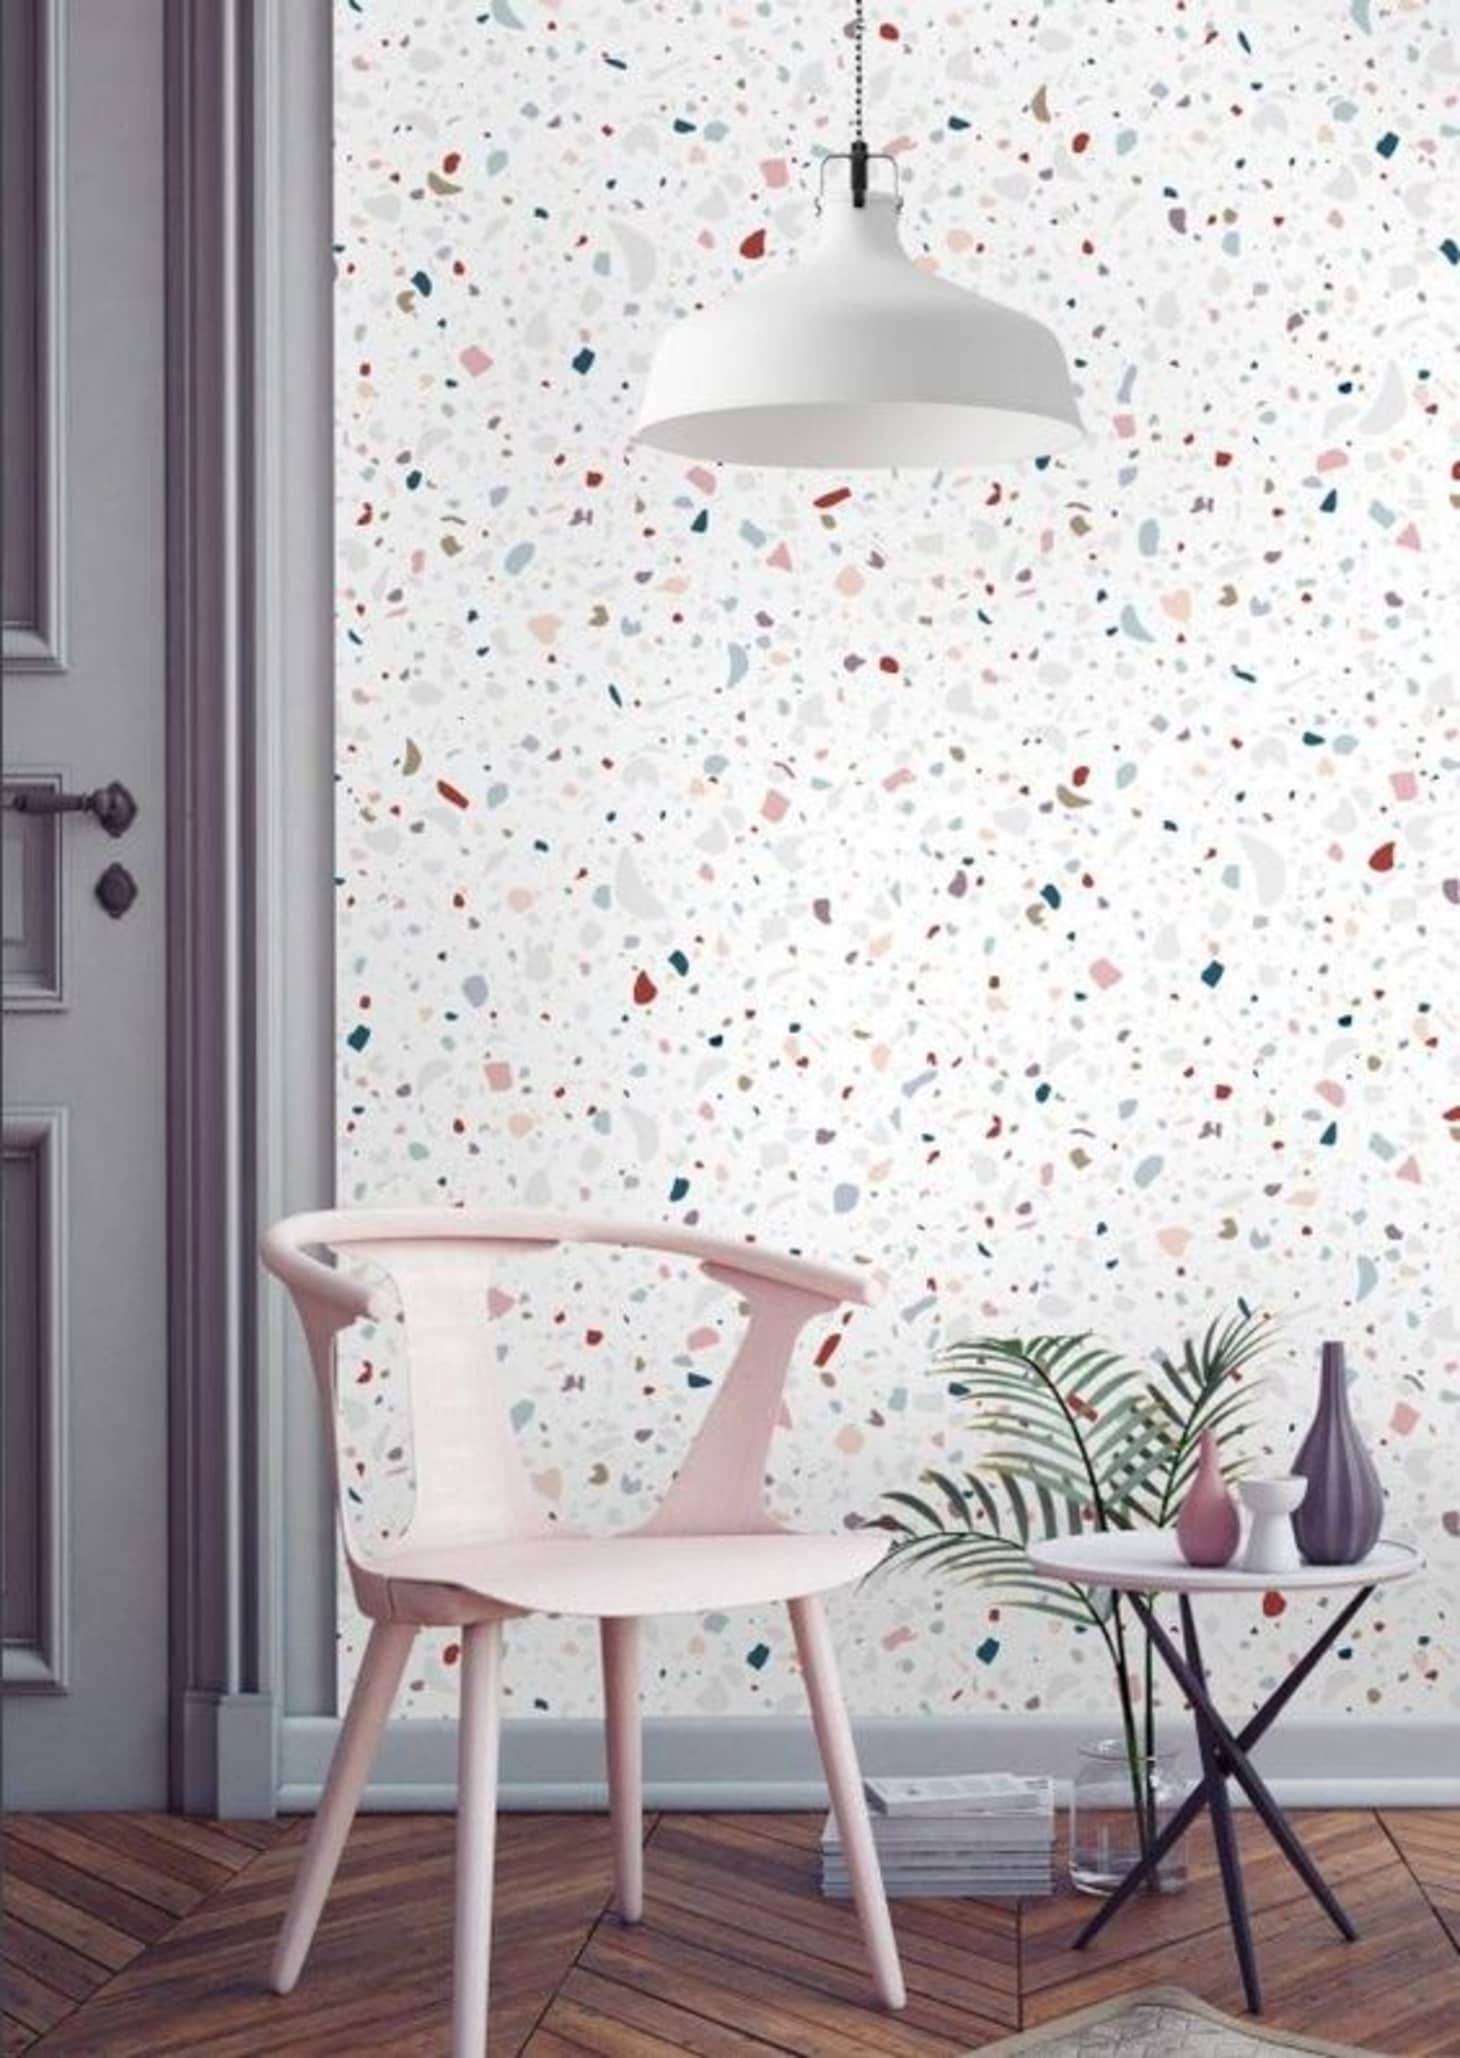 On Trend: Terrazzo is Making a Major Comeback | Apartment